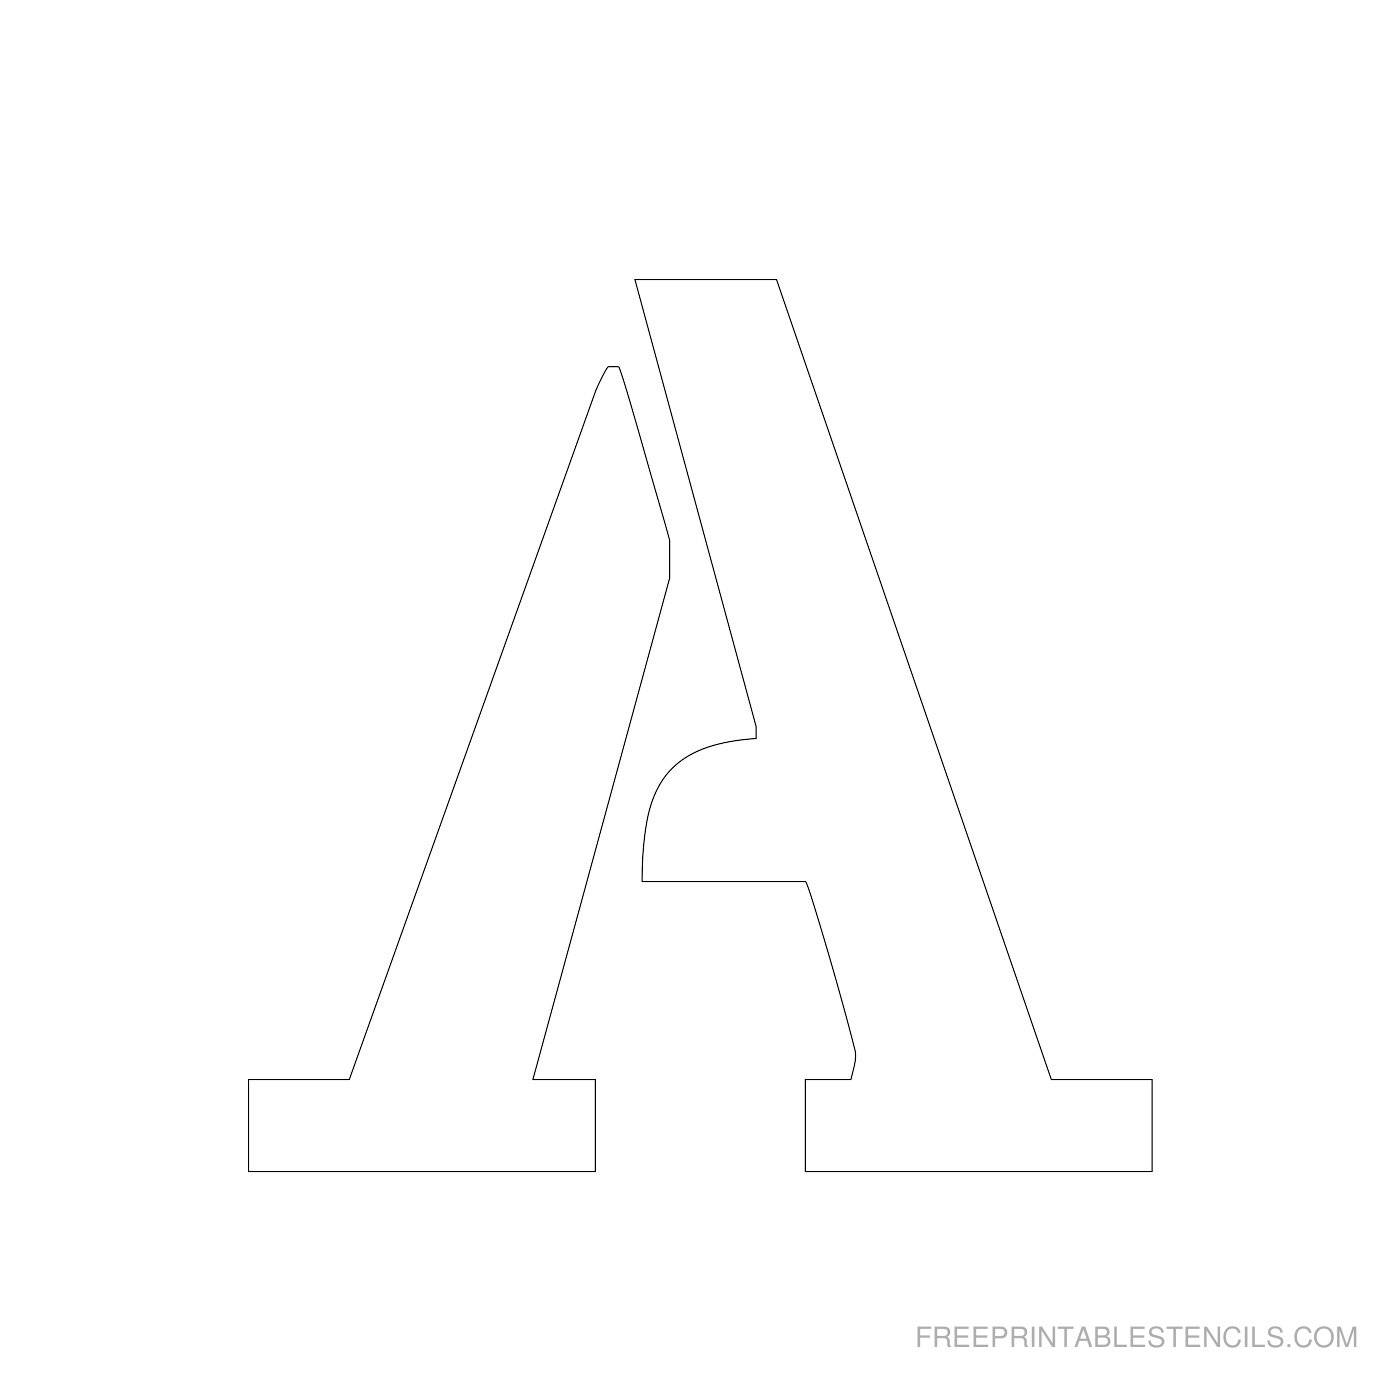 Printable 4 Inch Letter Stencils A-Z | Free Printable Stencils - Free Printable Letter Templates